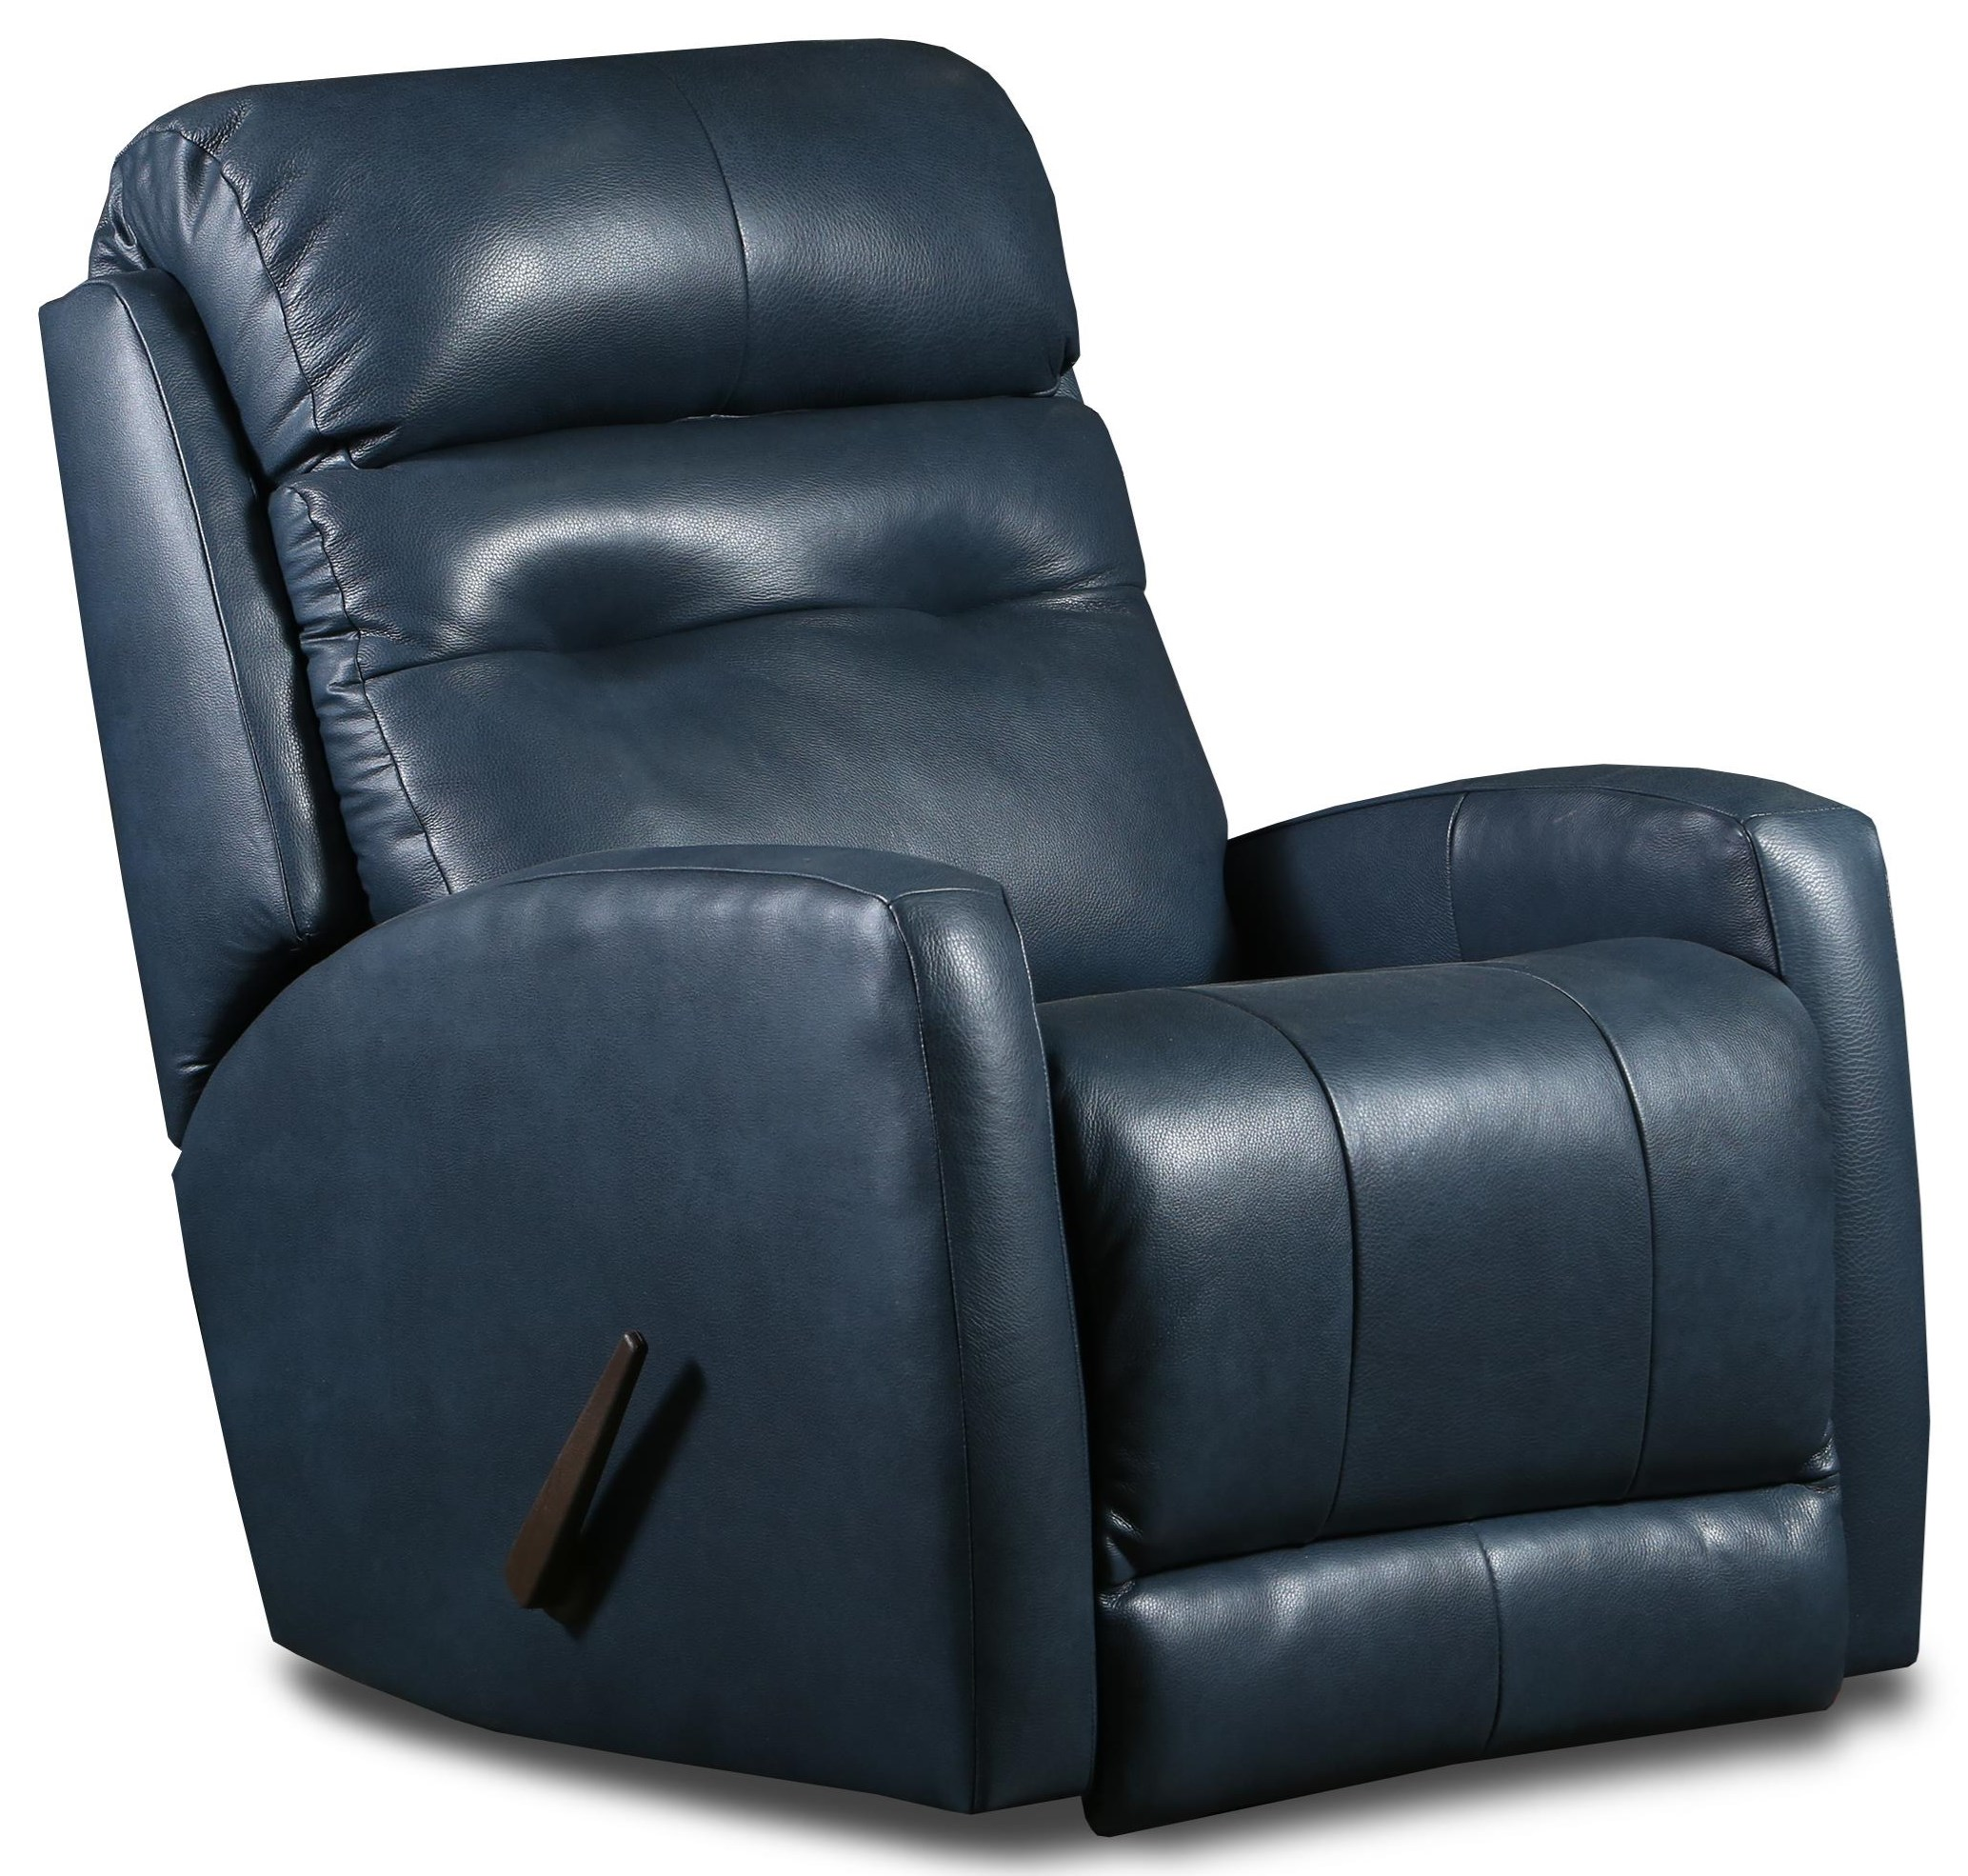 1157 Rocker Recliner 1157 LEATHER Rocker Recliner 903-60 by Southern Motion at Furniture Fair - North Carolina